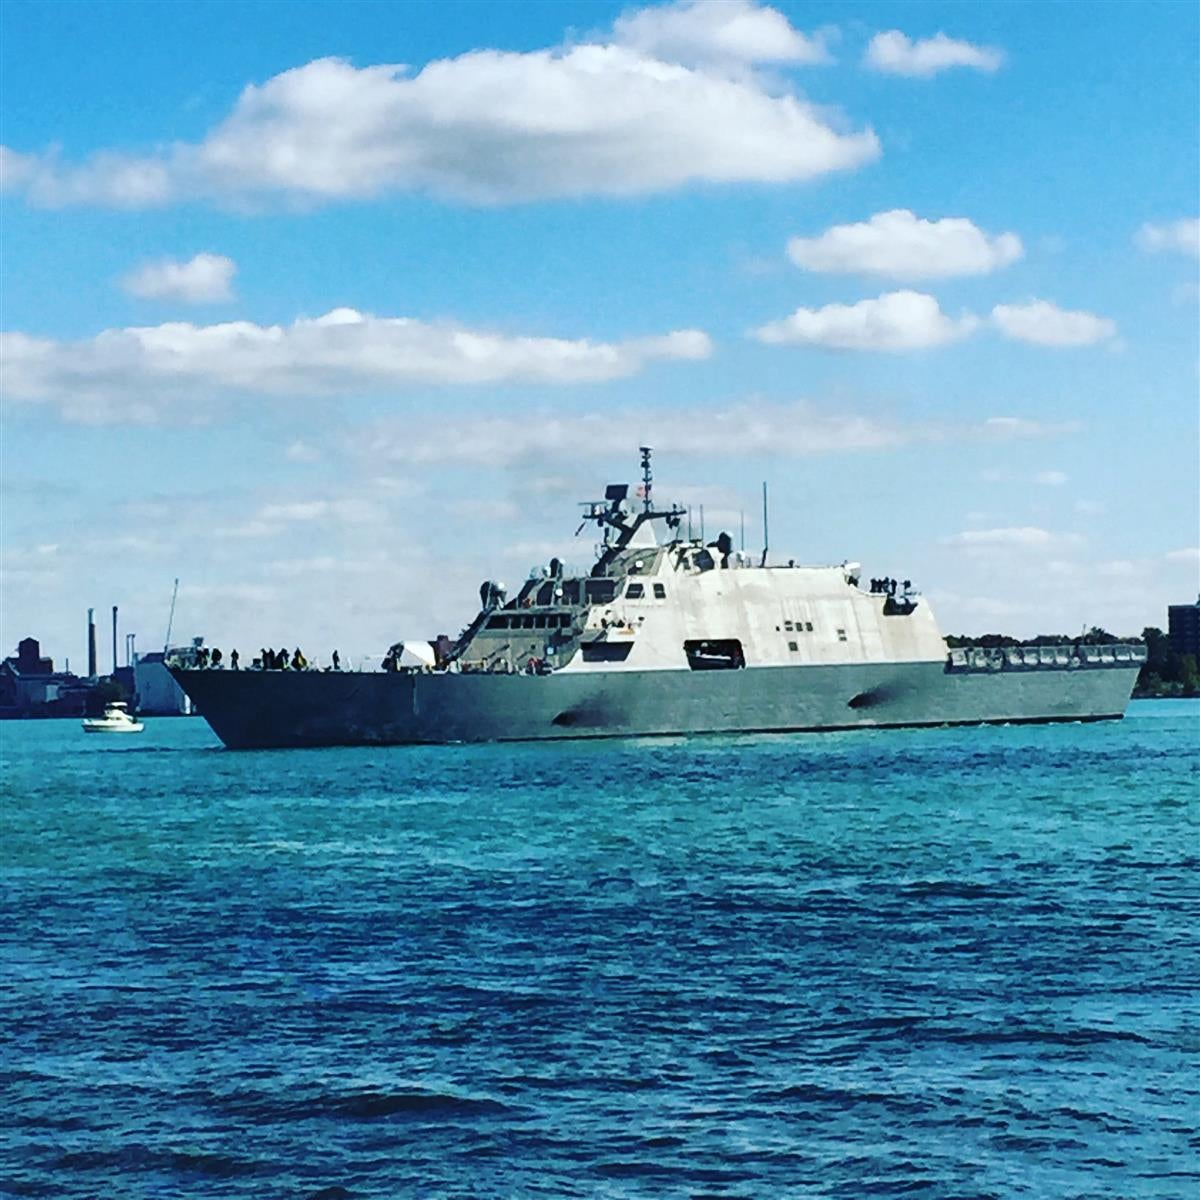 LCS-7 USS Detroit arrived today!